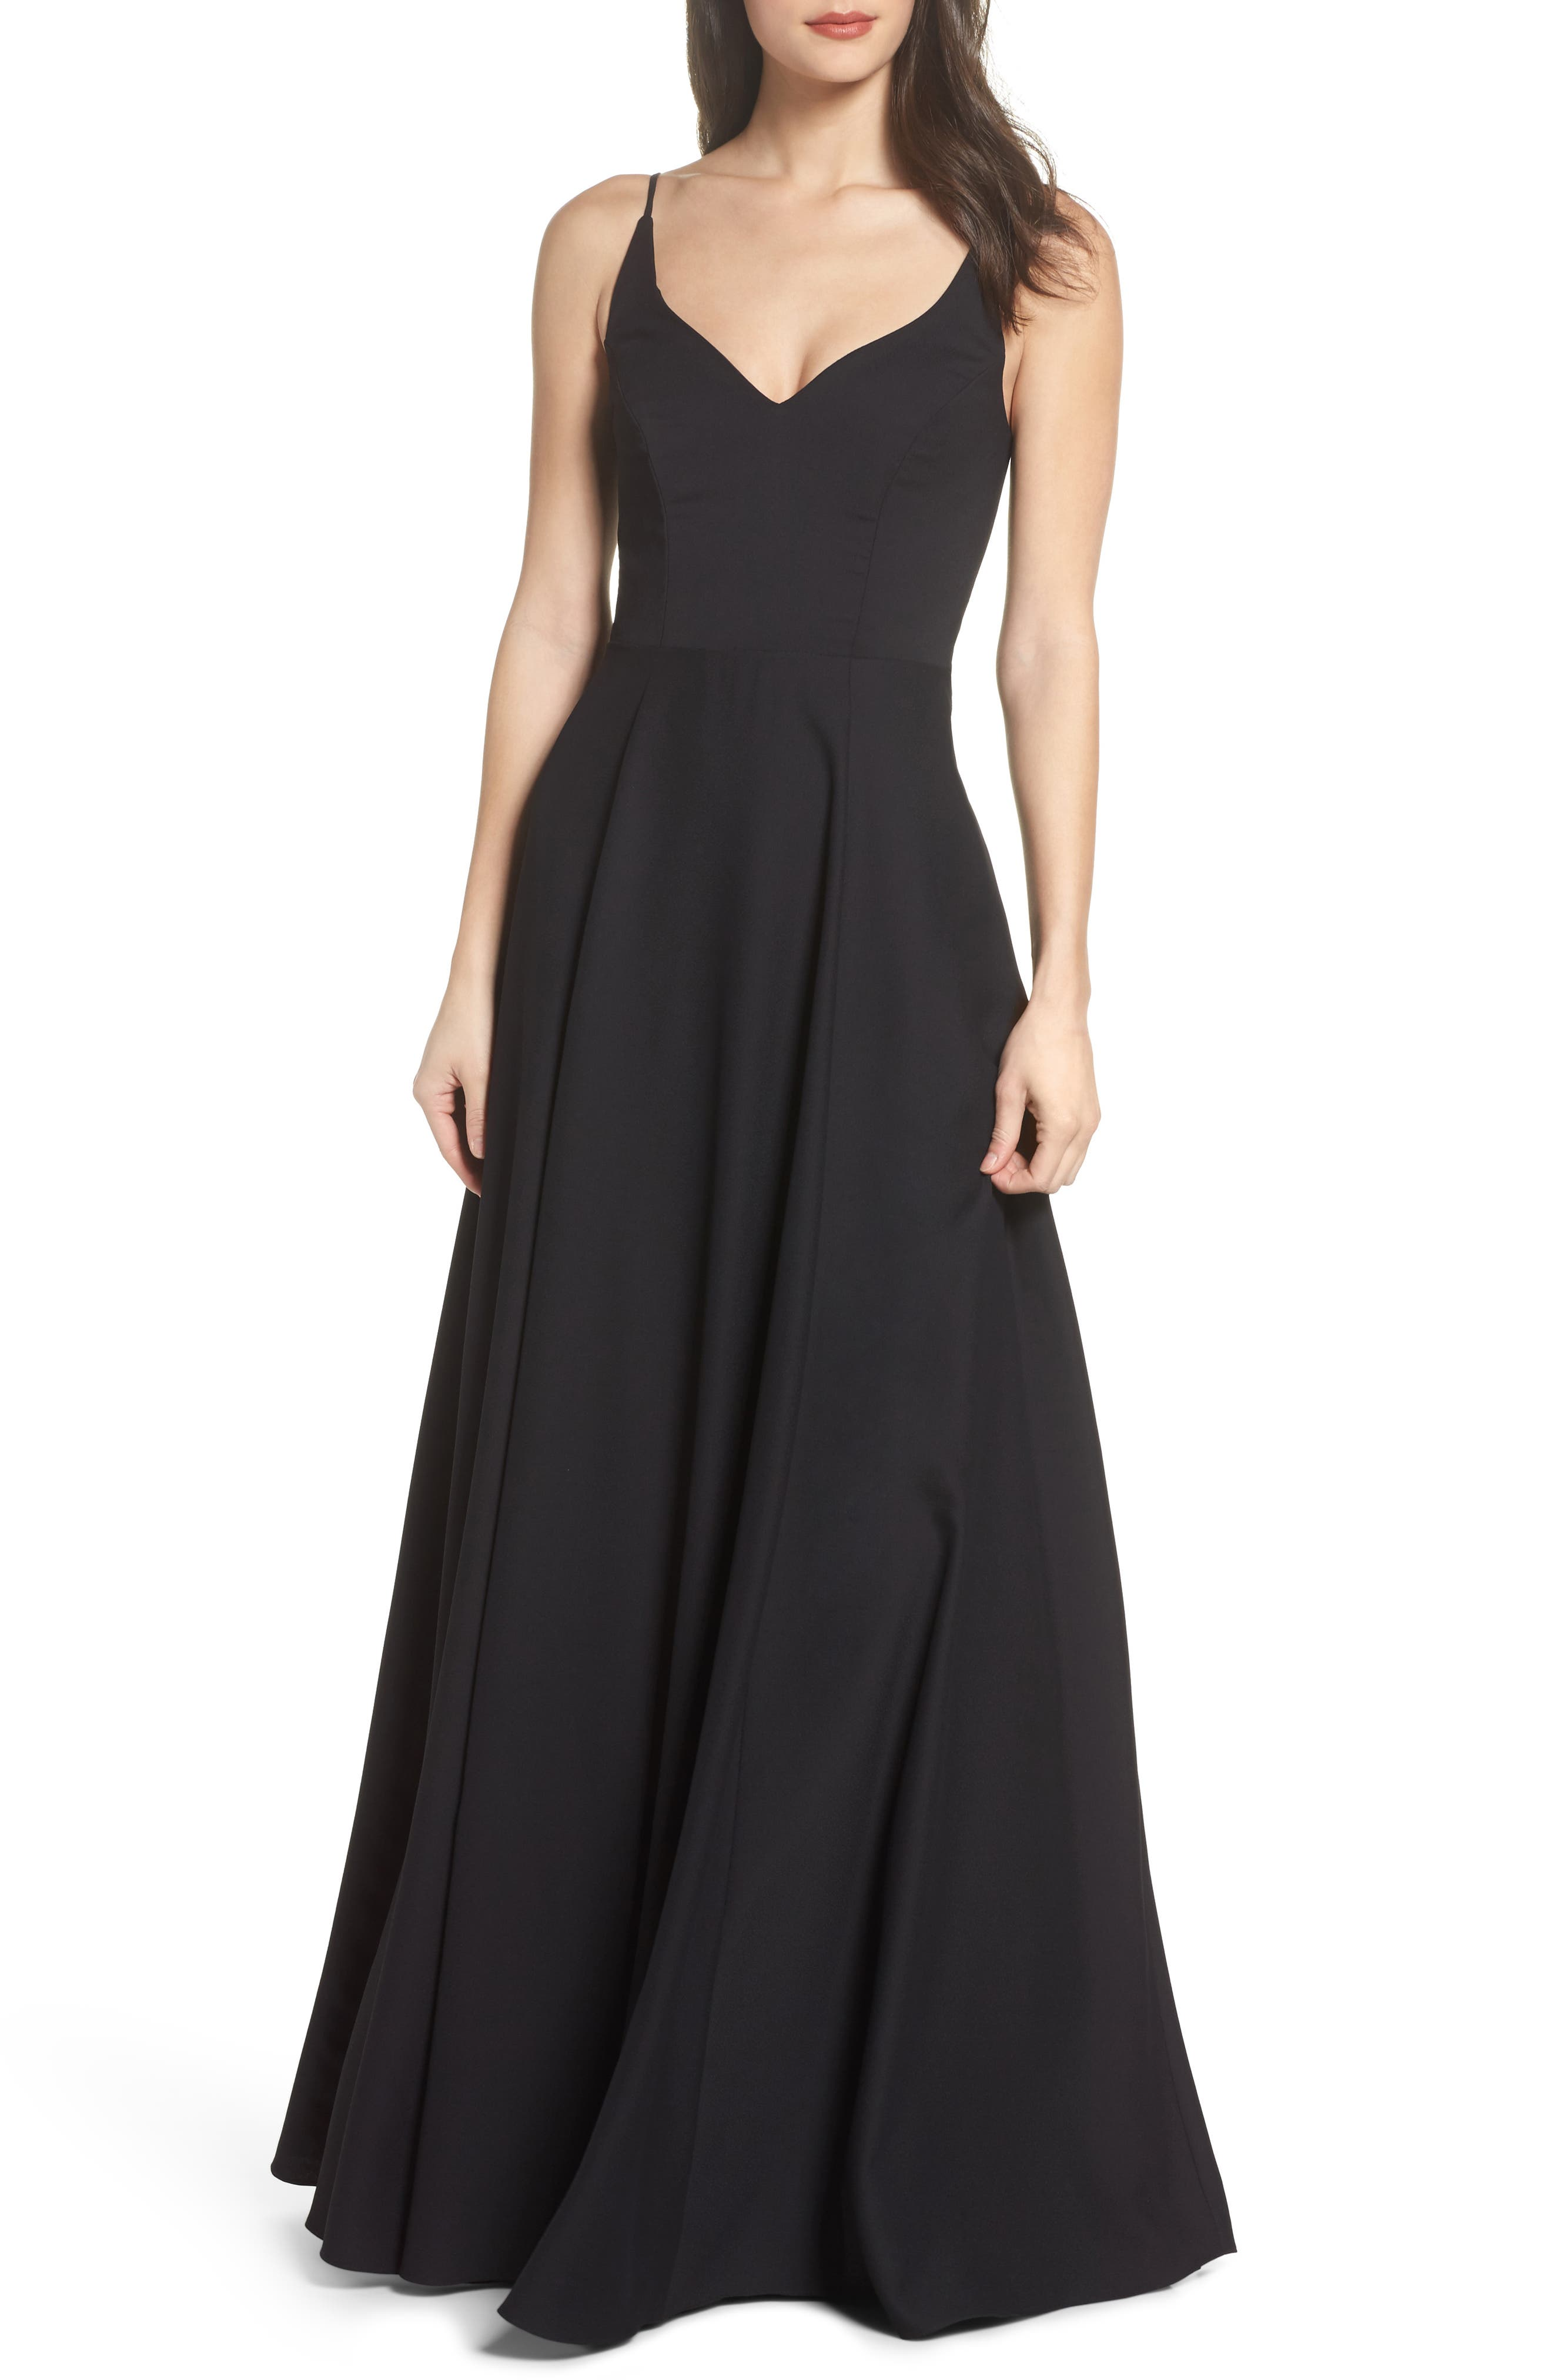 Main Image - Hayley Paige Occasions Cutout Crepe A-Line Gown